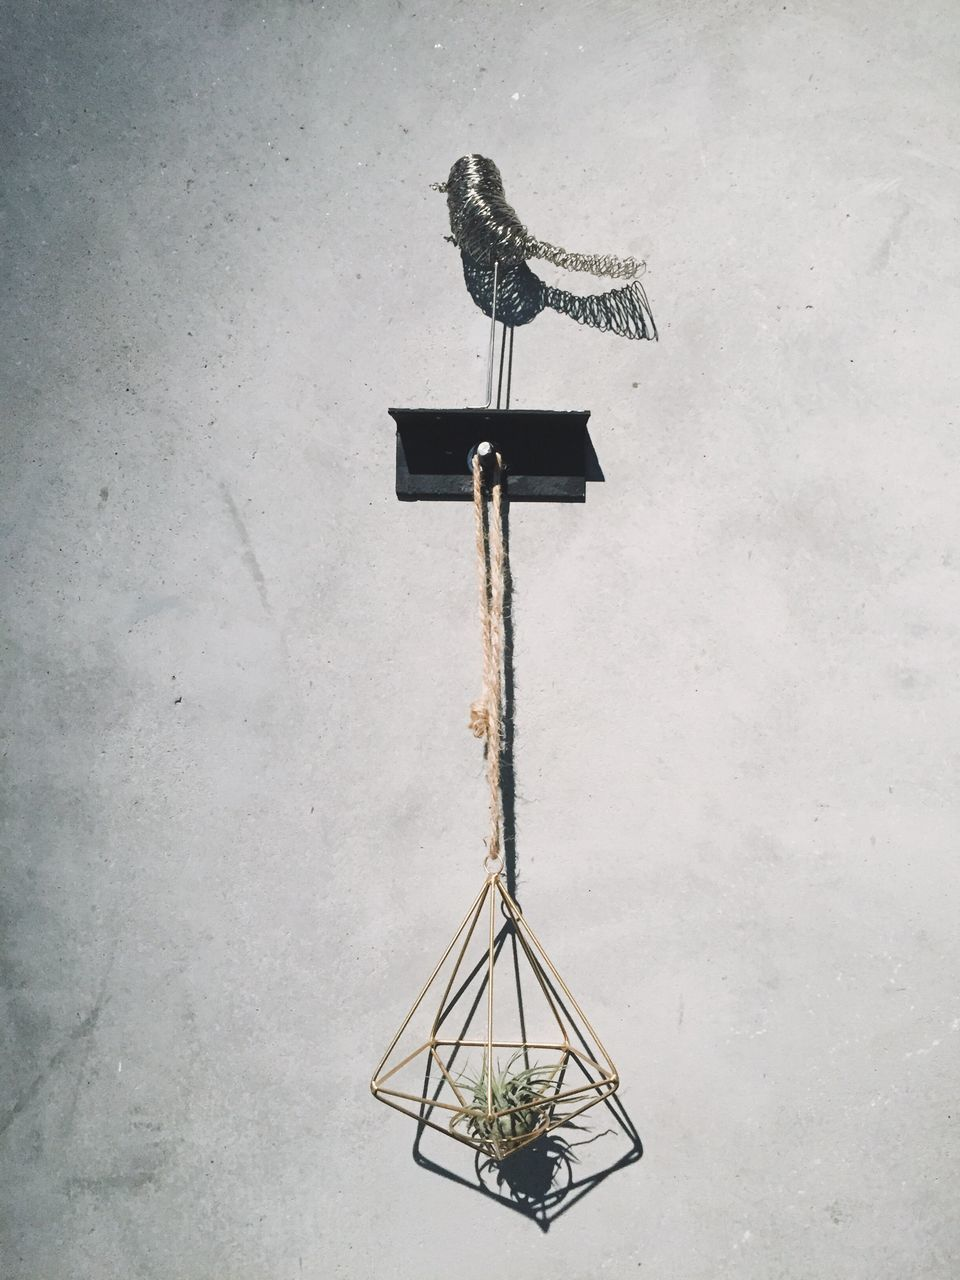 no people, weather vane, day, direction, hanging, outdoors, close-up, bird